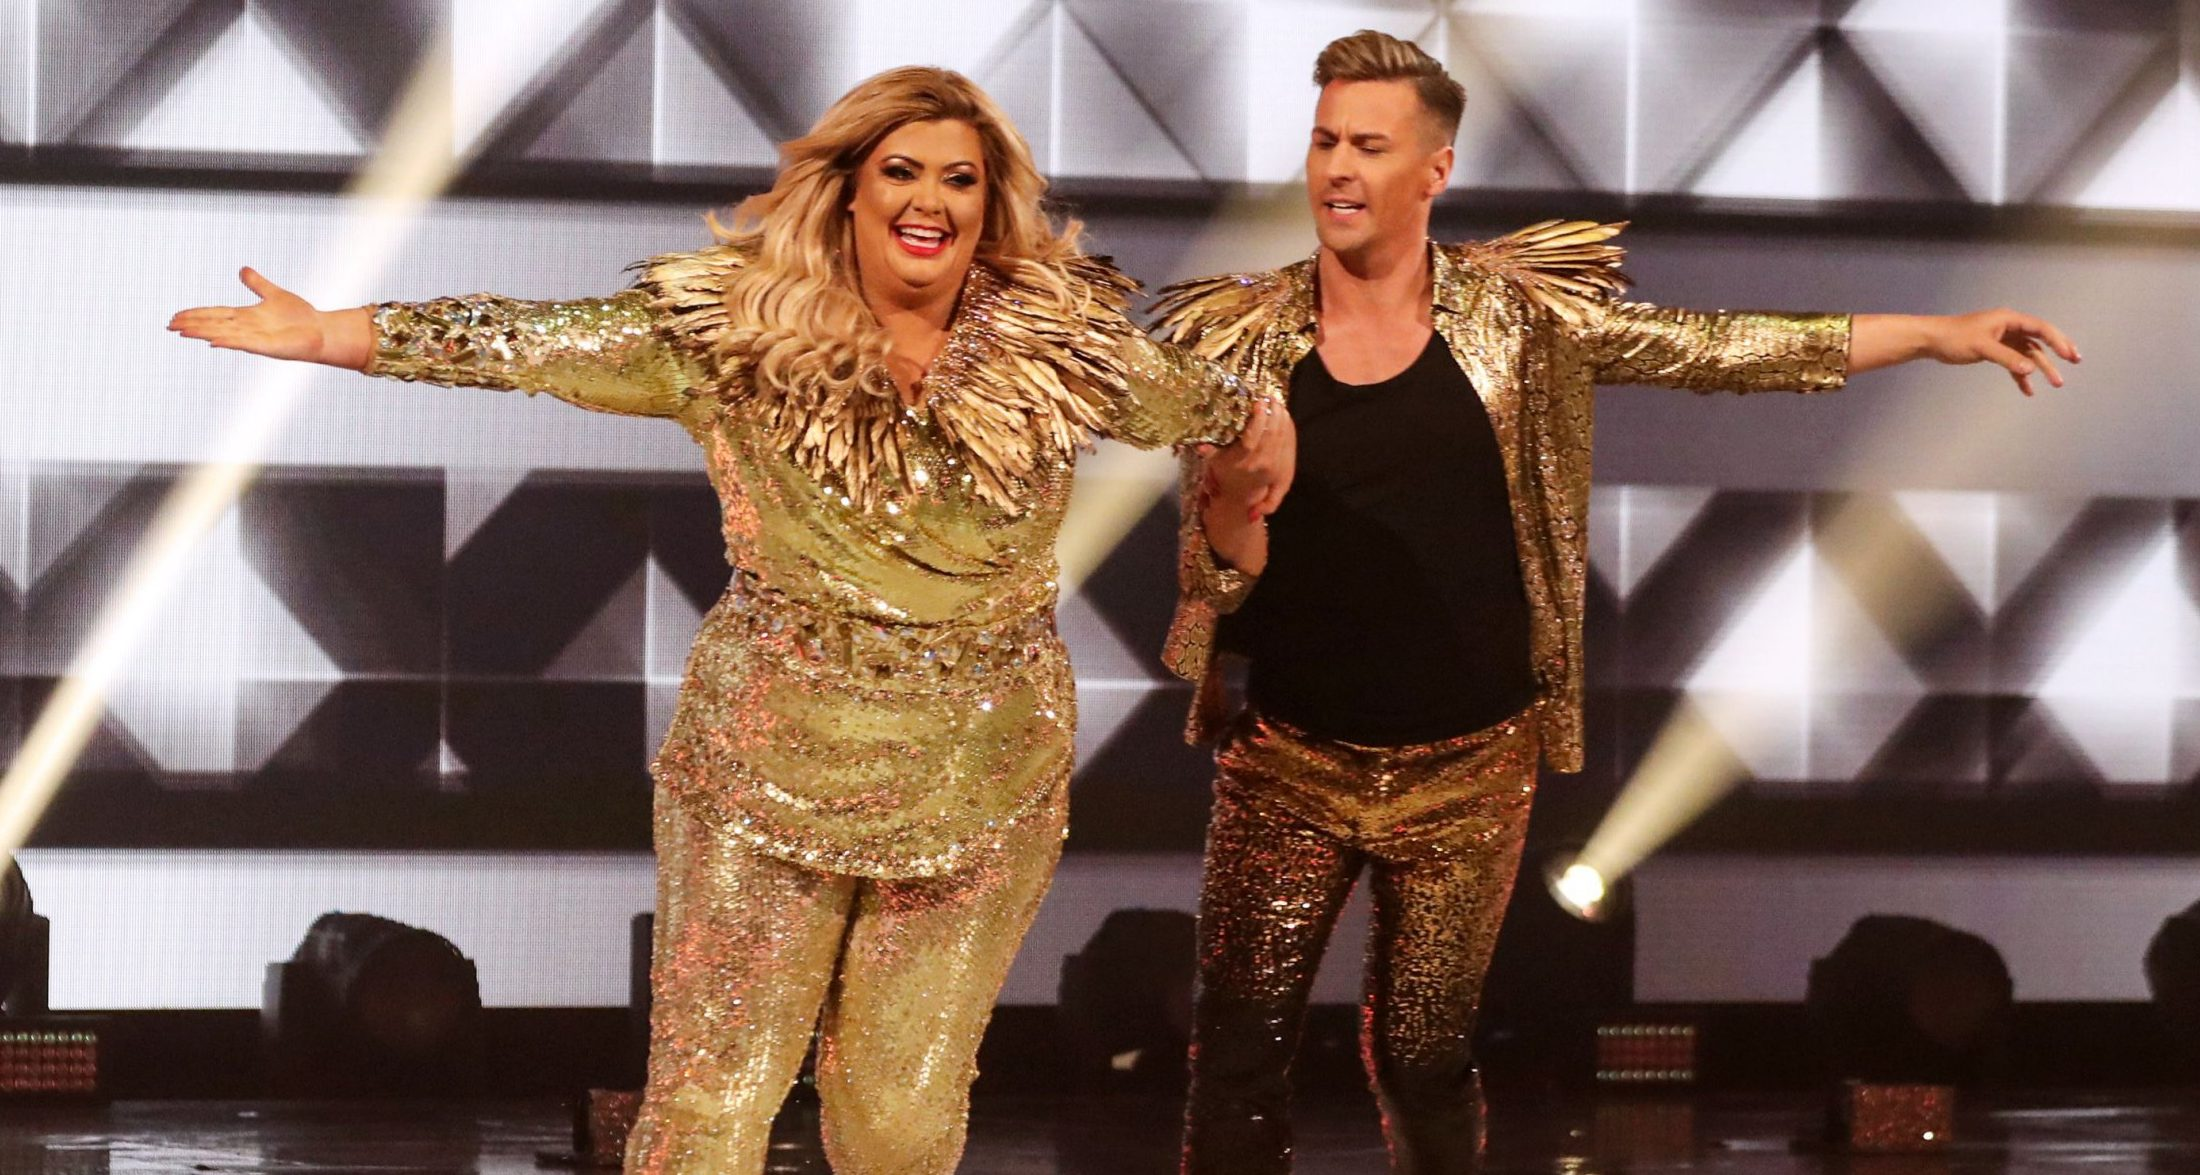 Editorial use only Mandatory Credit: Photo by Matt Frost/ITV/REX (10048681az) Gemma Collins and Matt Evers 'Dancing on Ice' TV show, Series 11, Episode 1, Hertfordshire, UK - 06 Jan 2019